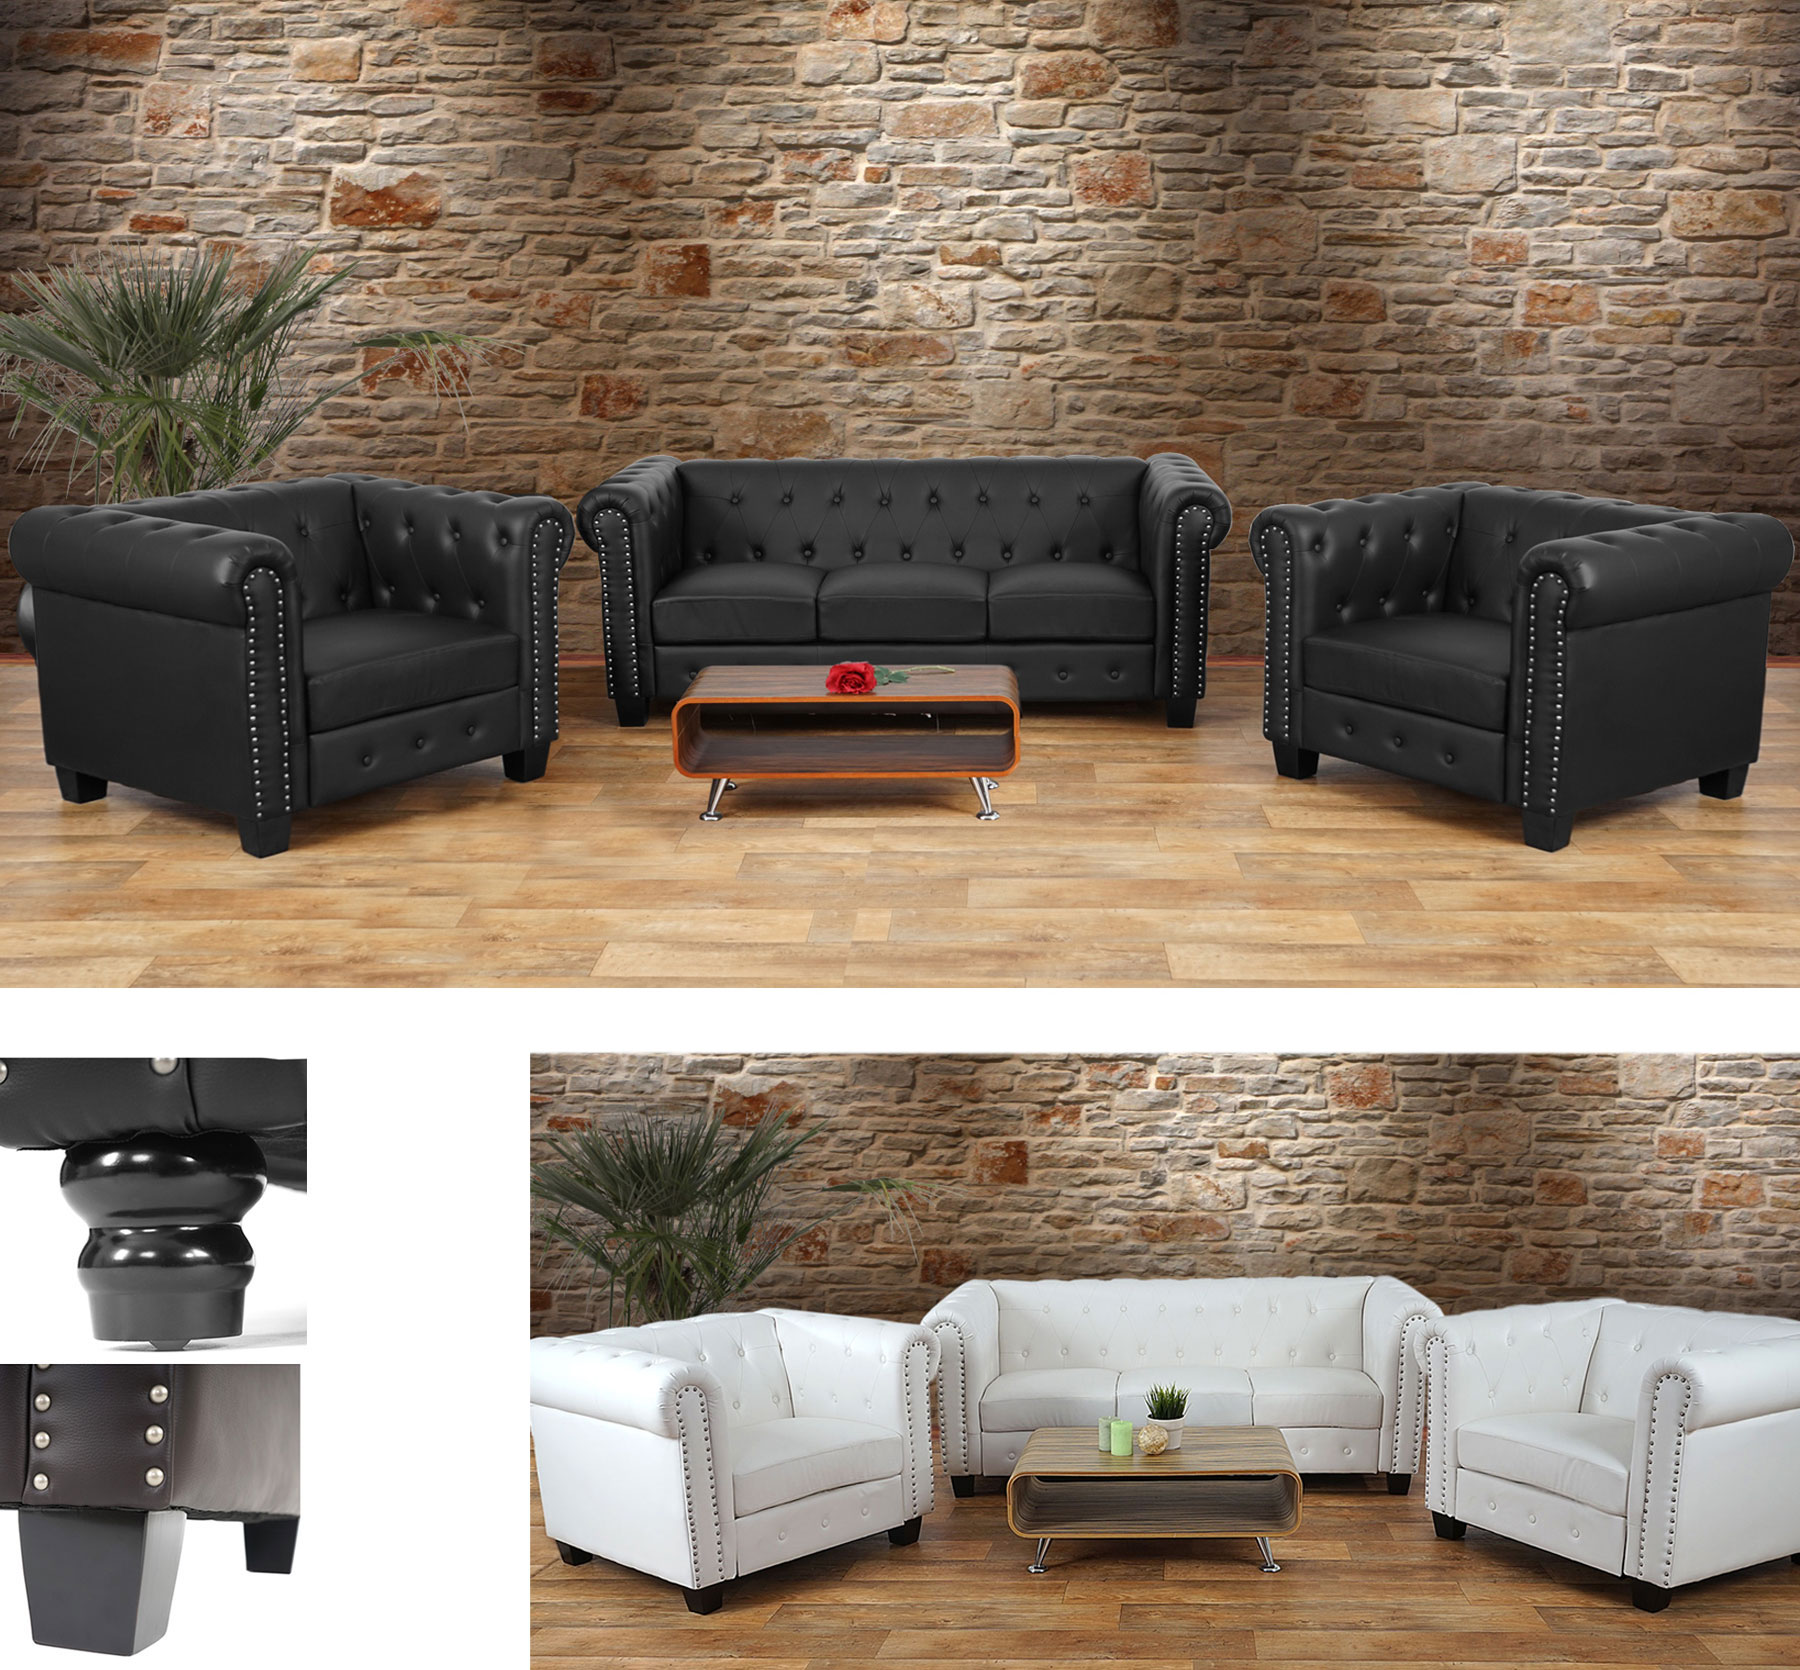 luxus 3 1 1 sofagarnitur chesterfield couch kunstleder runde oder eckige f e ebay. Black Bedroom Furniture Sets. Home Design Ideas